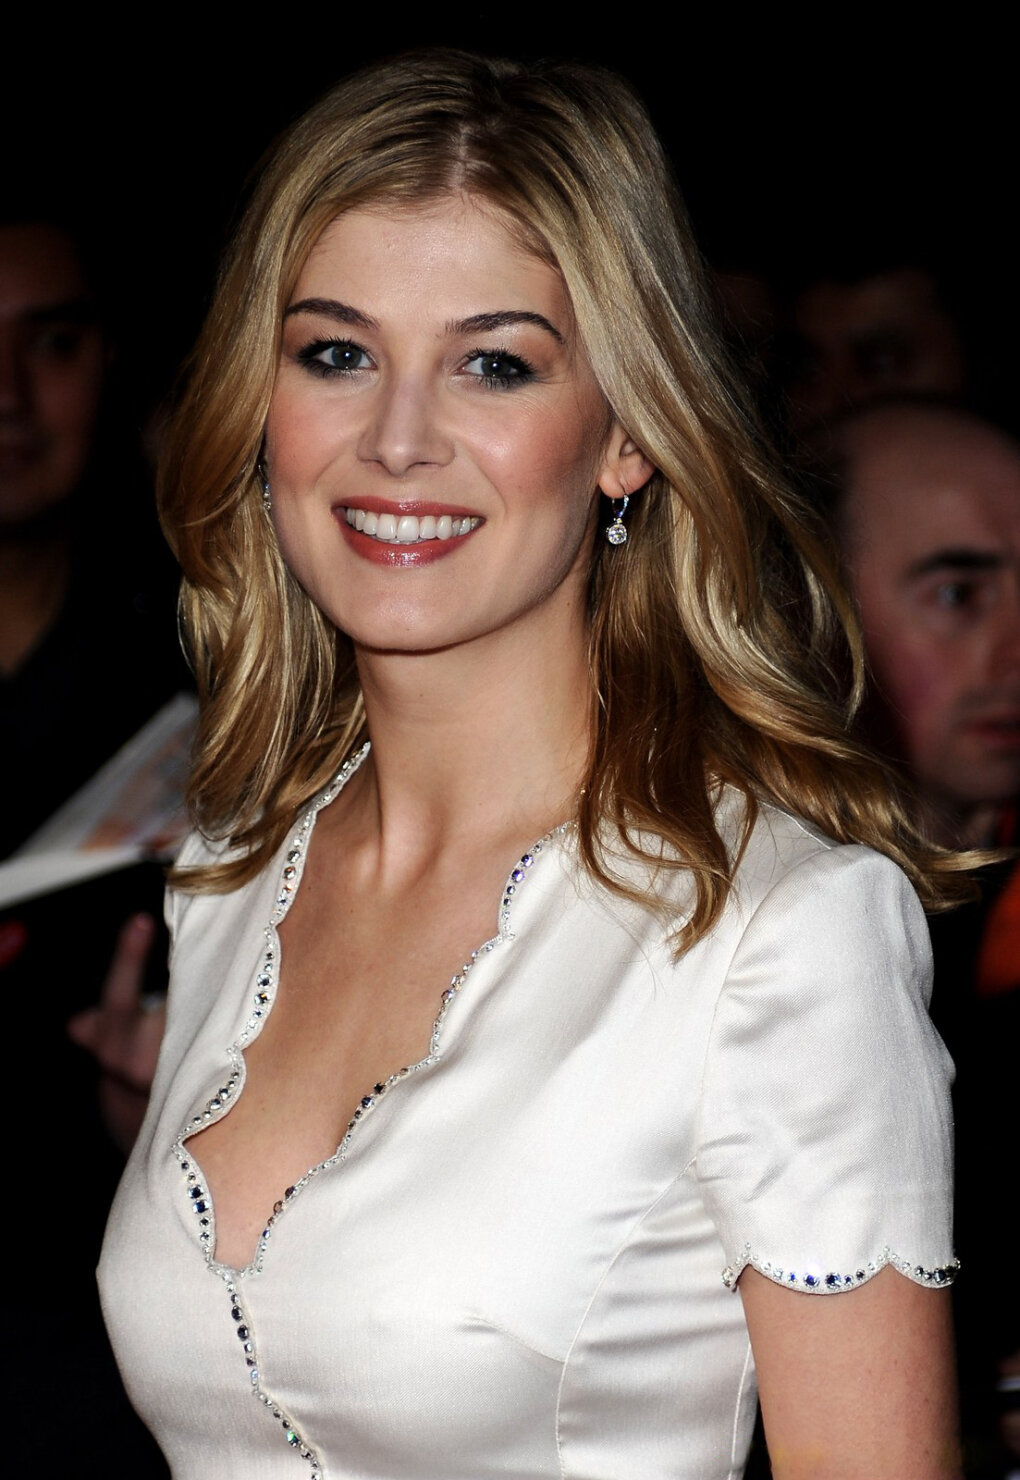 Sexy And Talented Rosamund Pike (20+ Photos) - Sharenator ...